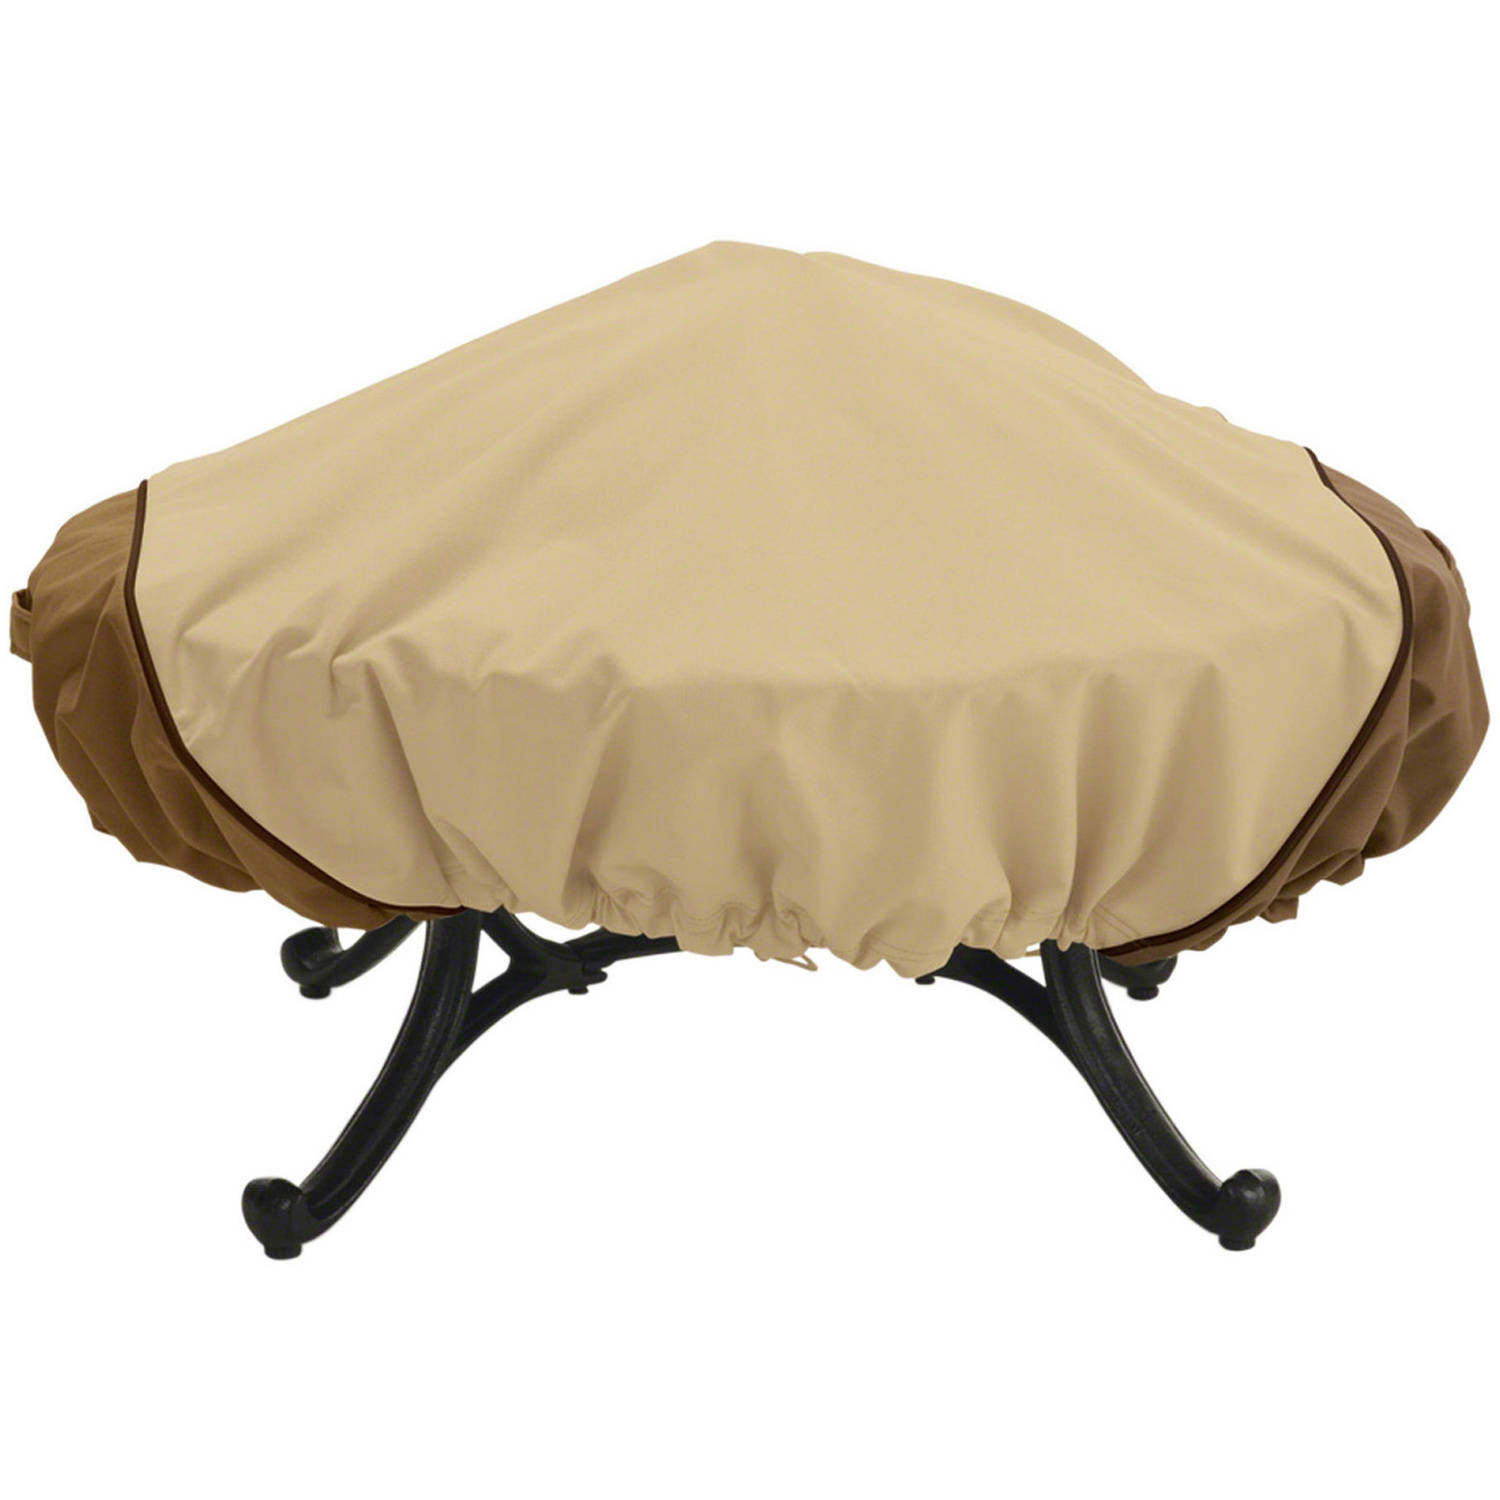 "Classic Accessories Veranda Round Fire Pit Patio Storage Cover, fits up to 44"" diameter"